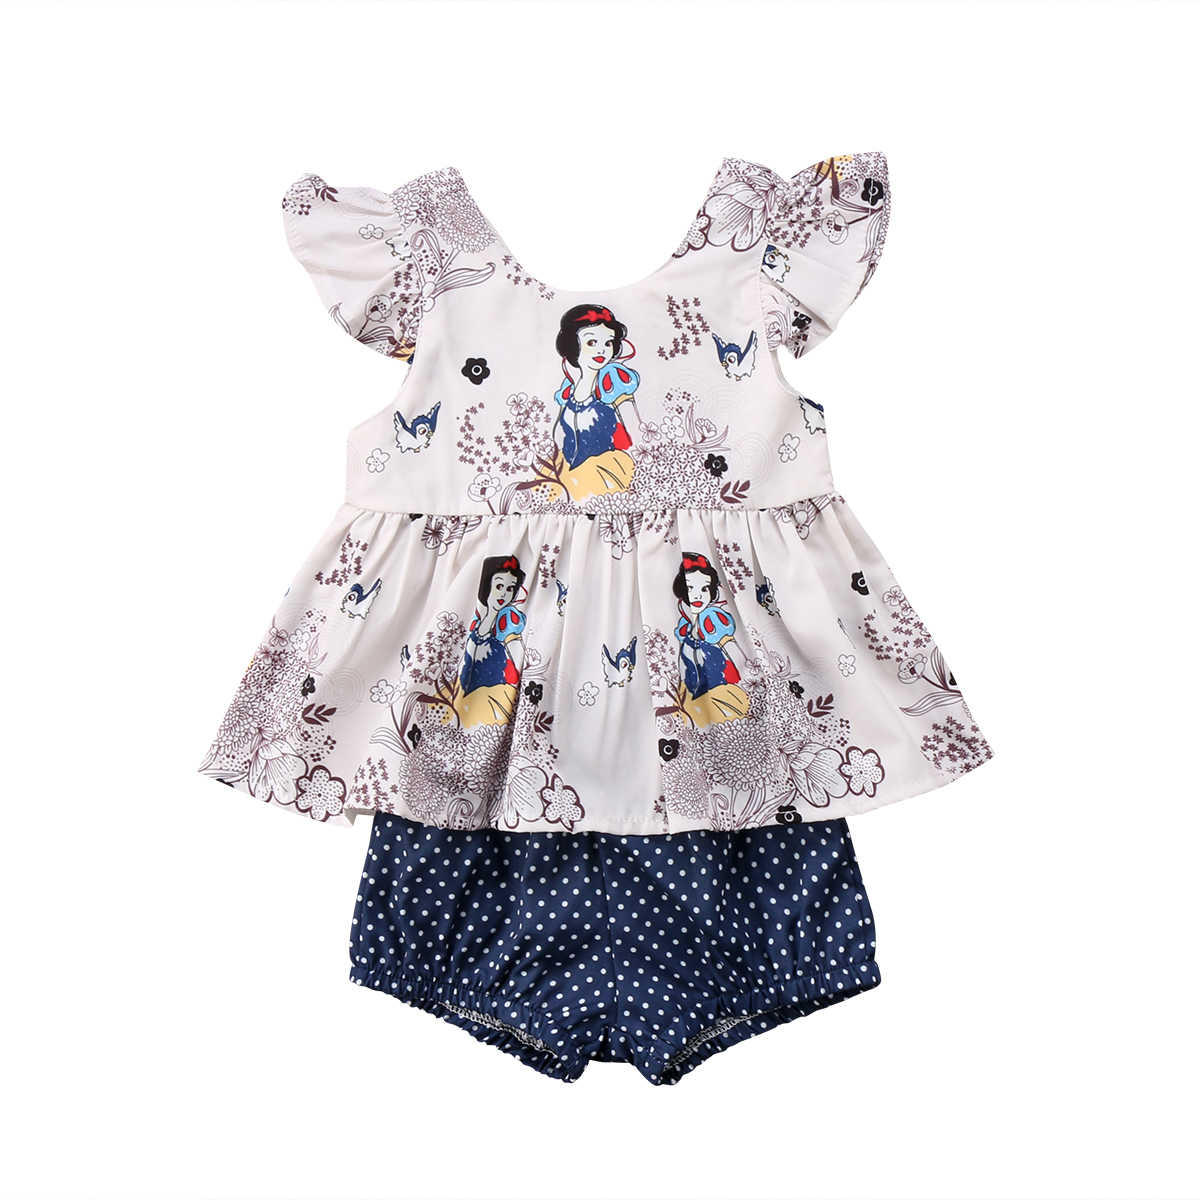 1298f8a35046 Detail Feedback Questions about 2018 Newborn Infant Baby Girls ...